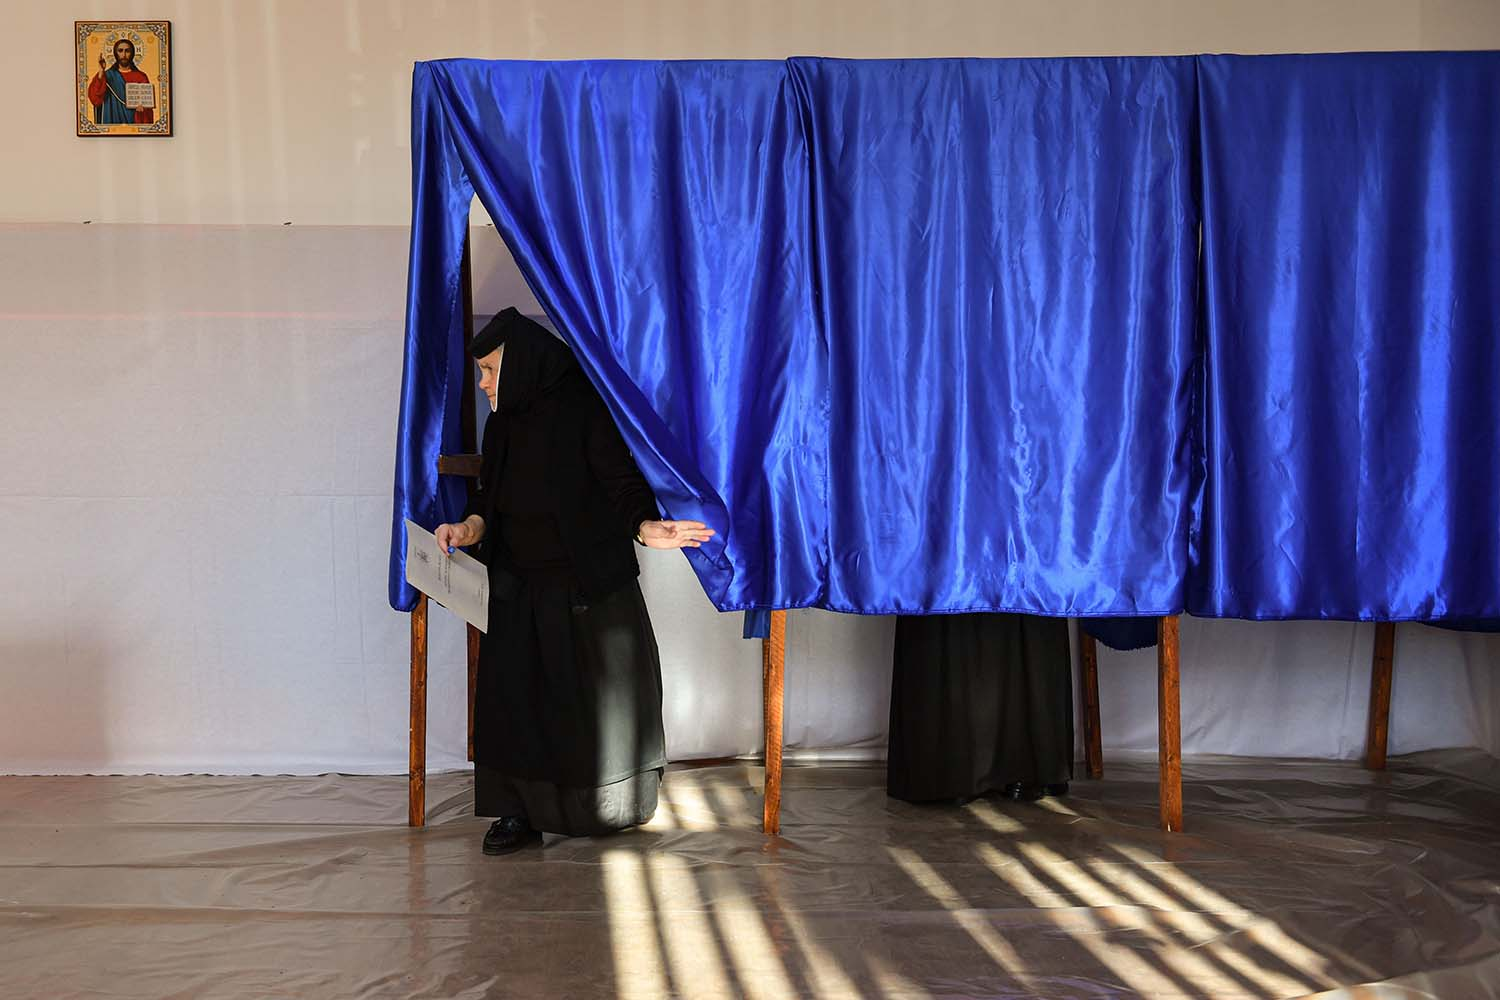 Orthodox nuns vote at a polling station in Branesti village in the first round of Romania's presidential elections on Nov. 10. DANIEL MIHAILESCU/AFP via Getty Images